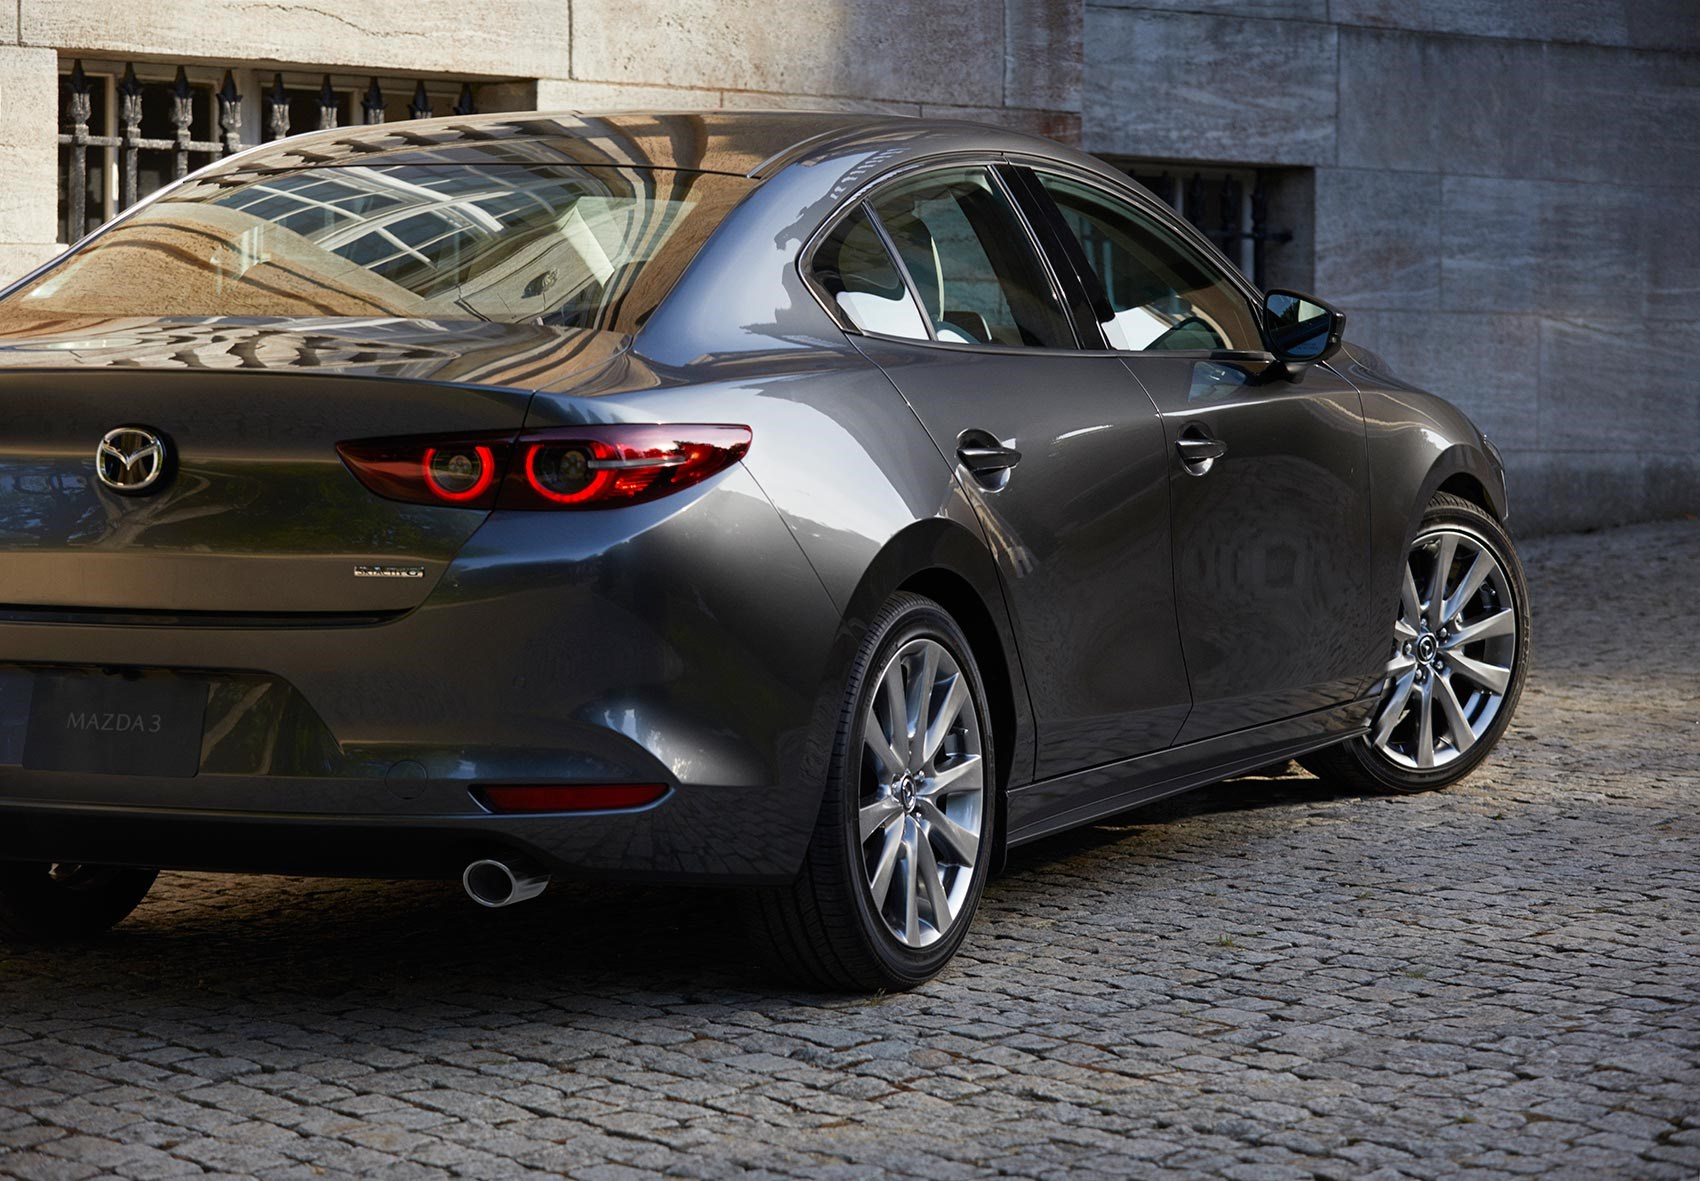 New 2019 Mazda 3 News And Pictures Car Magazine